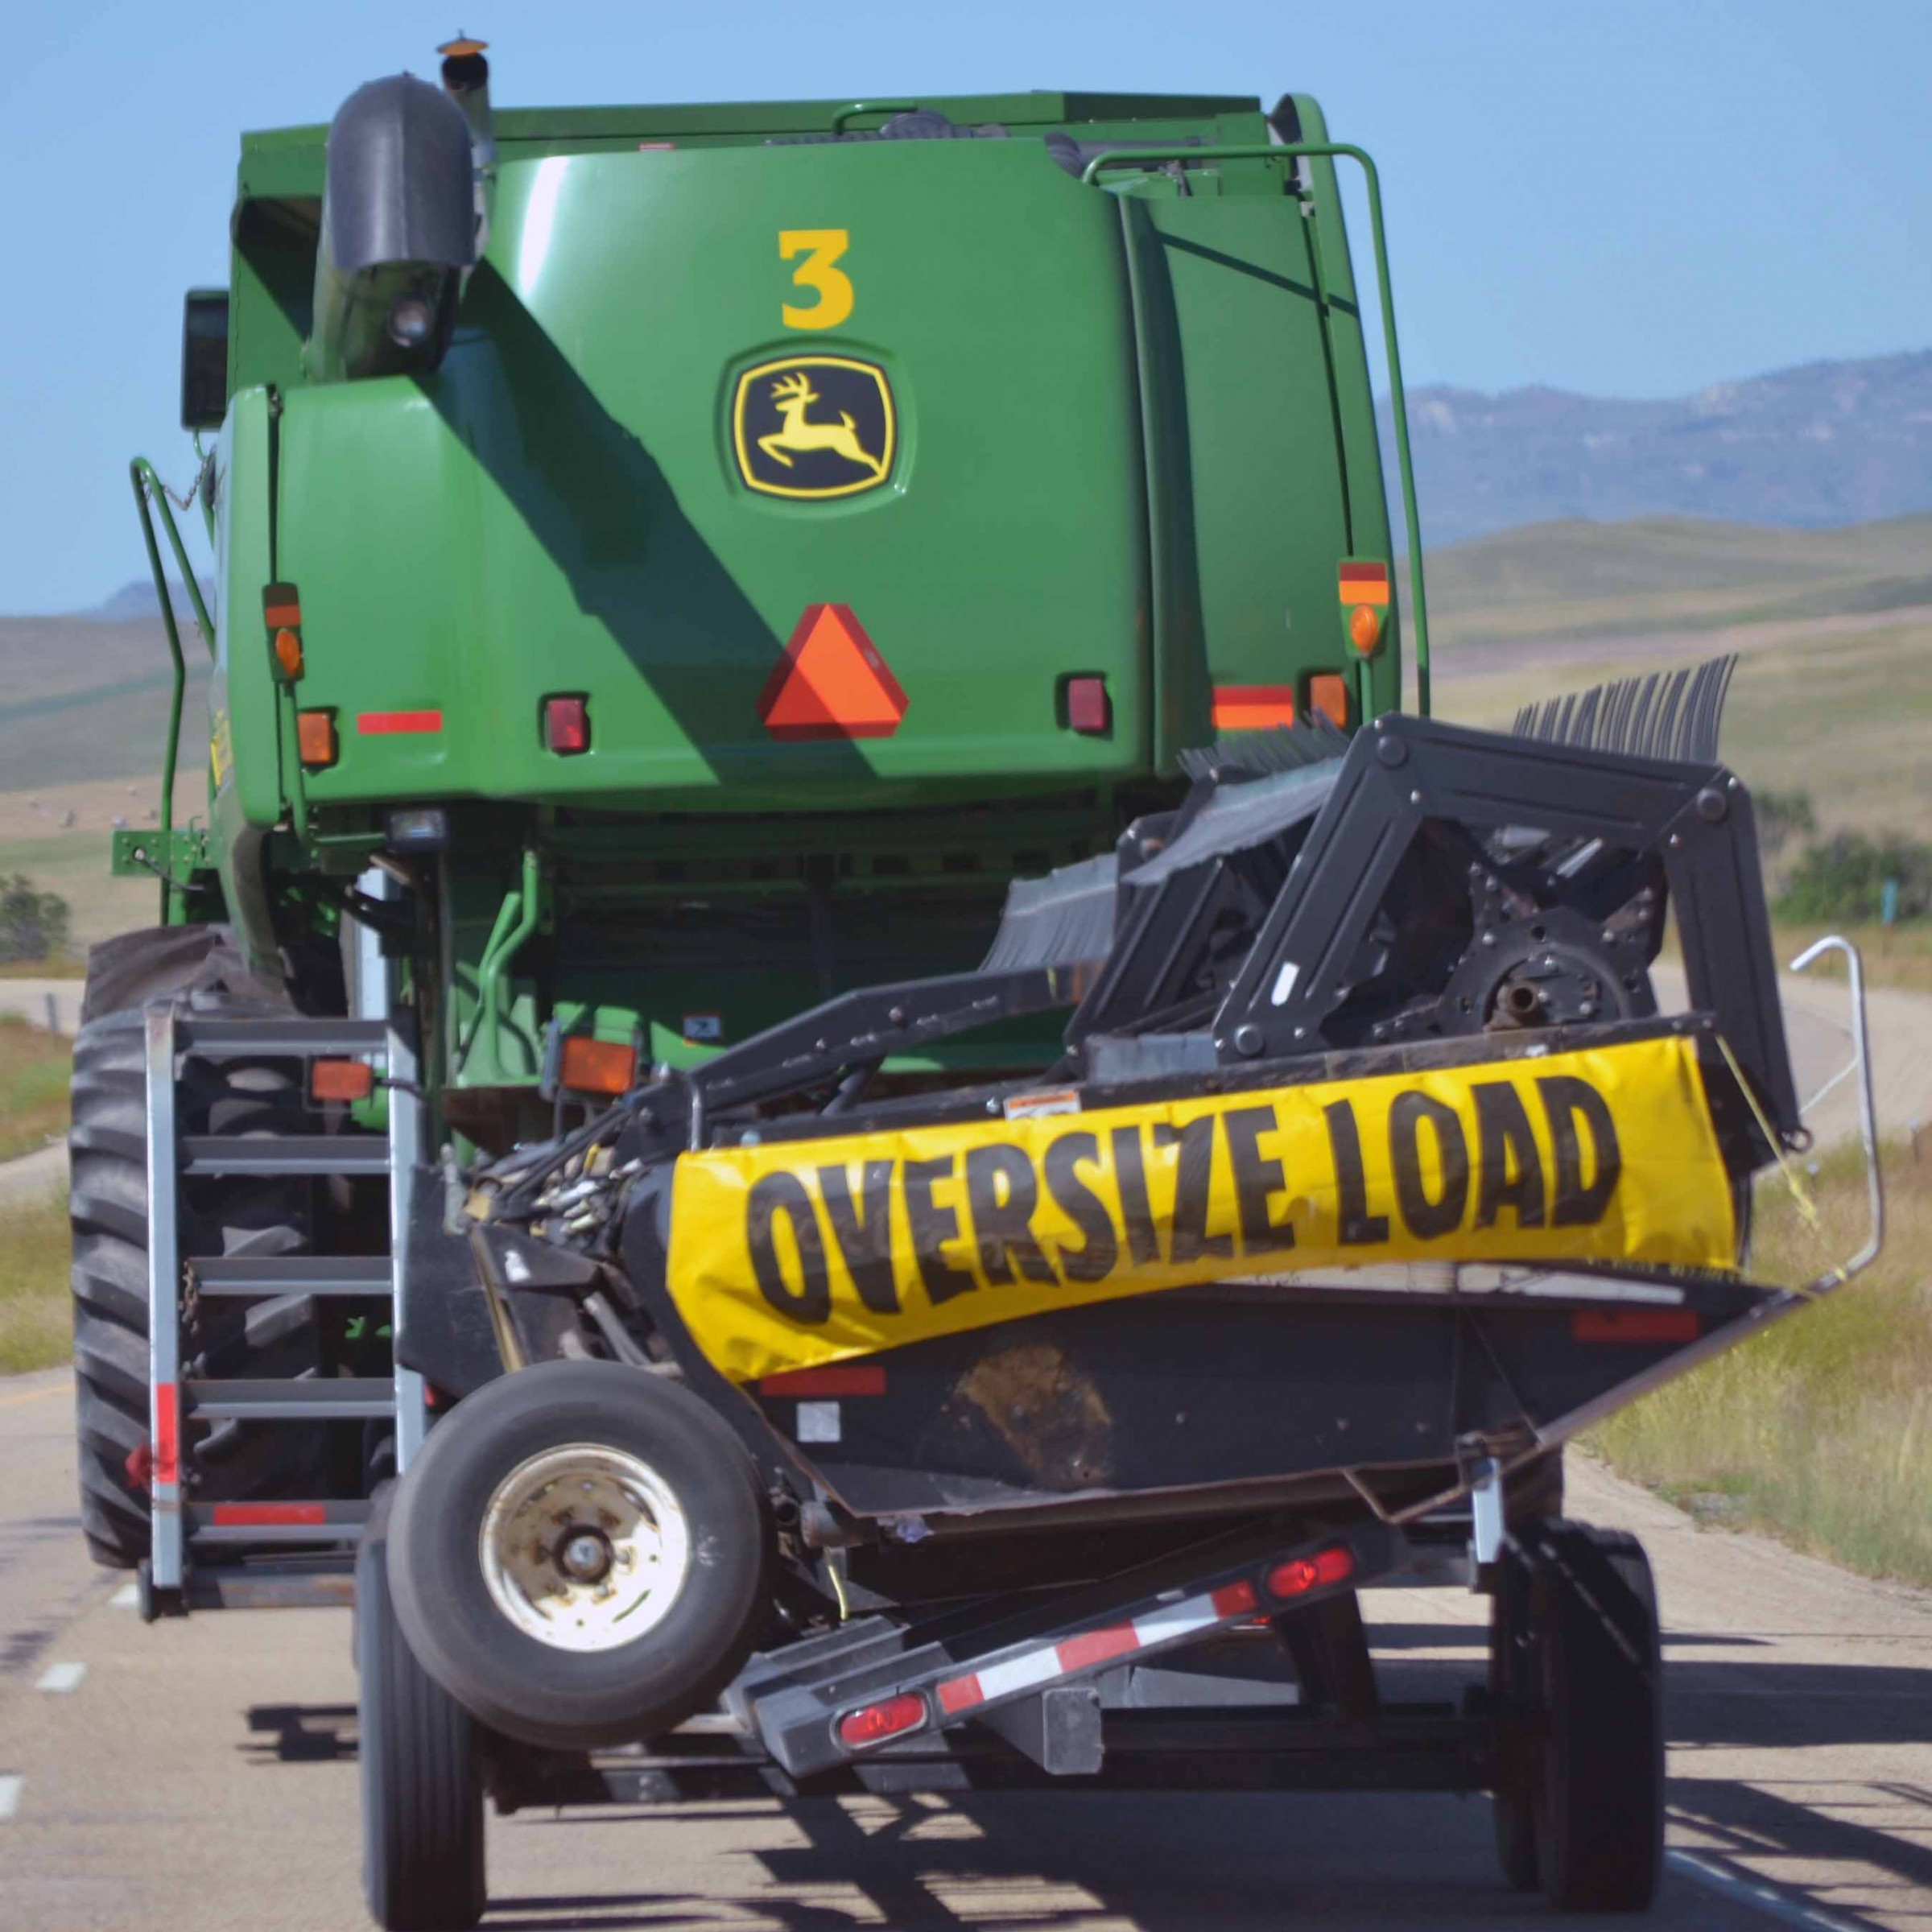 Vehicle Size Regulations – Agricultural Vehicles on the Road